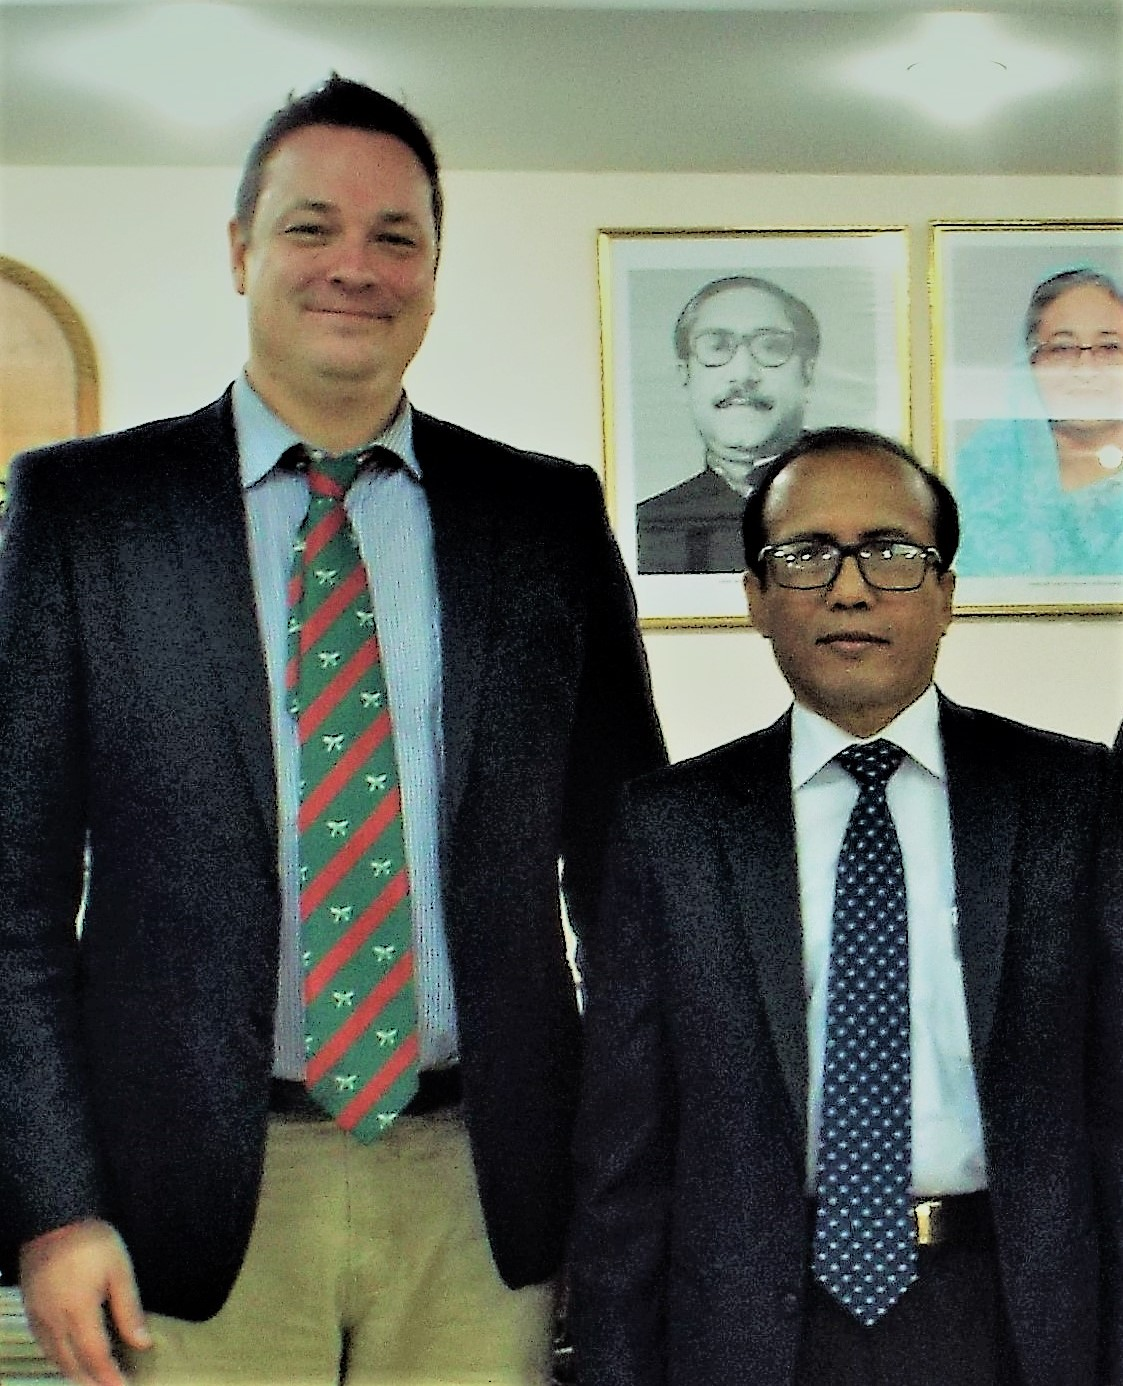 BEZA Executive Chairman Paban Choudhury with Locus founder & CEO Jean-Paul Gauthier in 2016